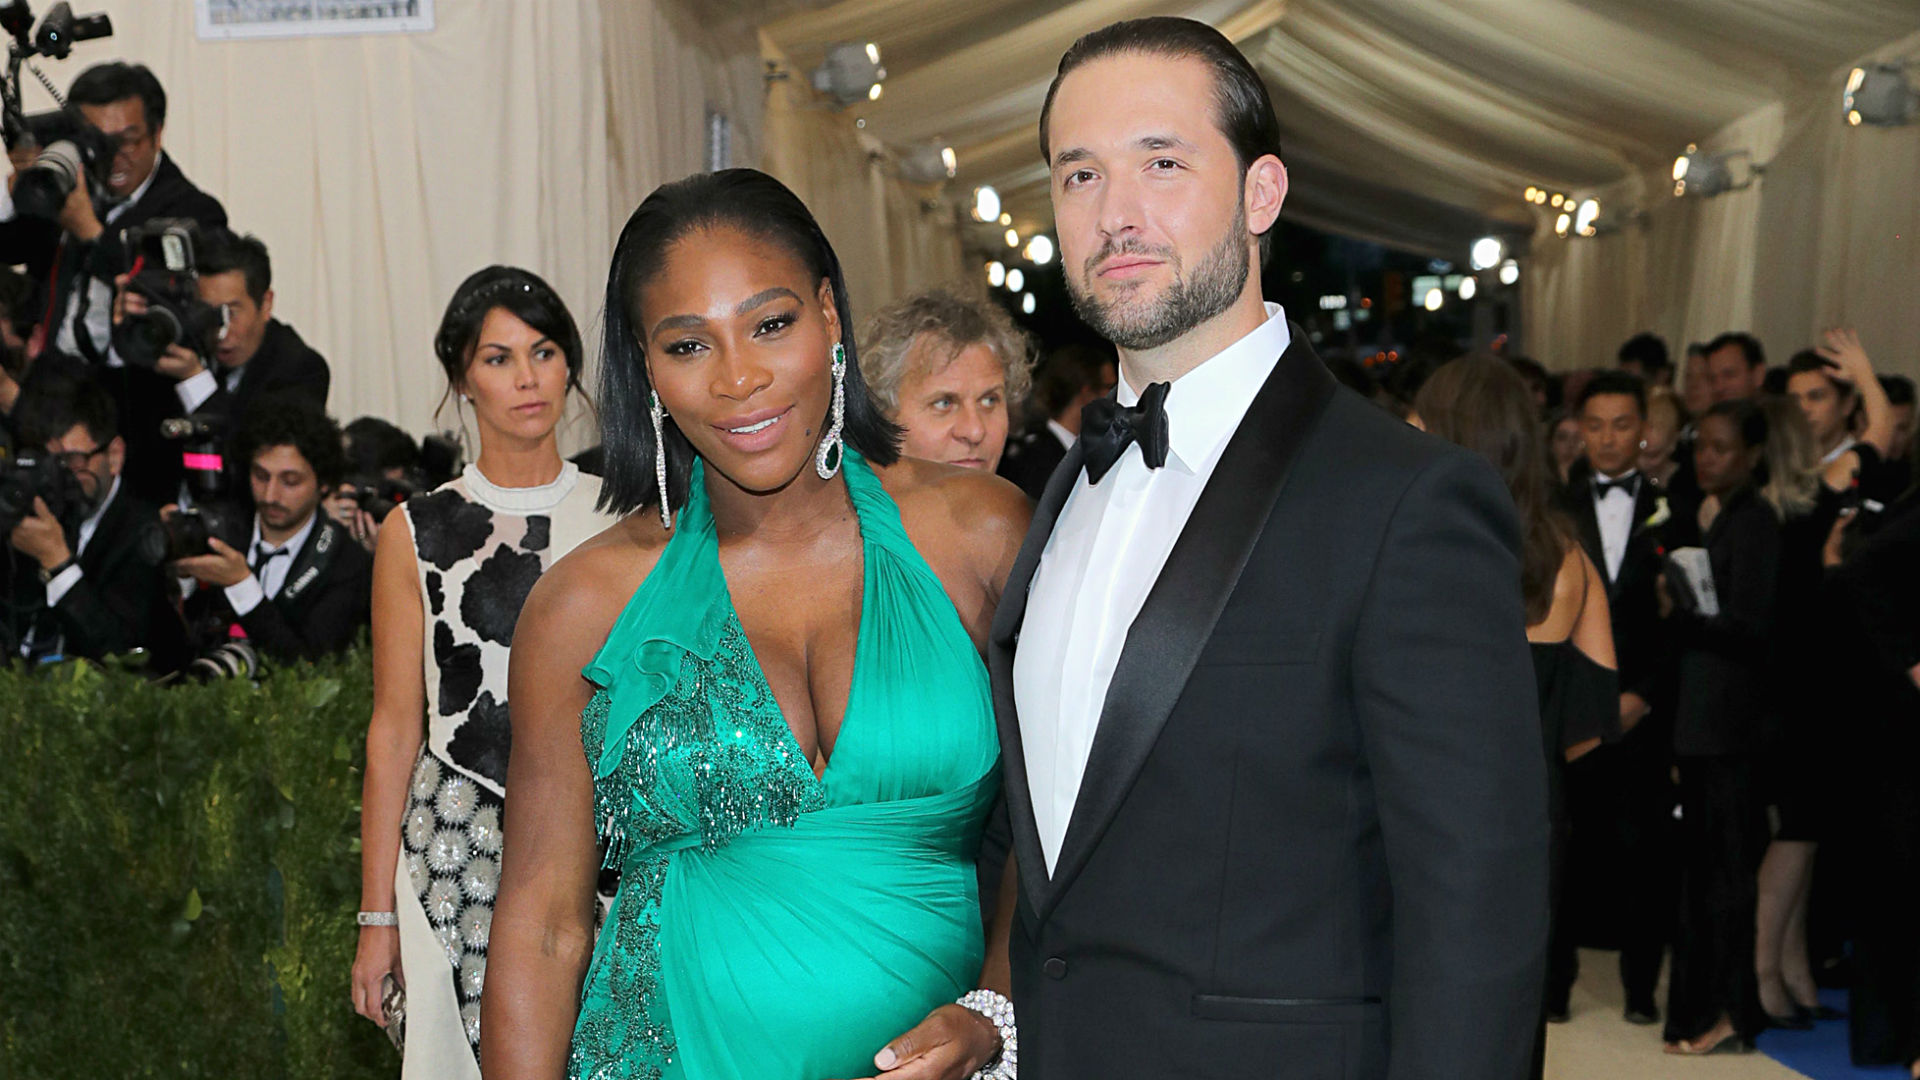 Serena Williams reveals first pictures of daughter Alexis Olympia Ohanian Jr.